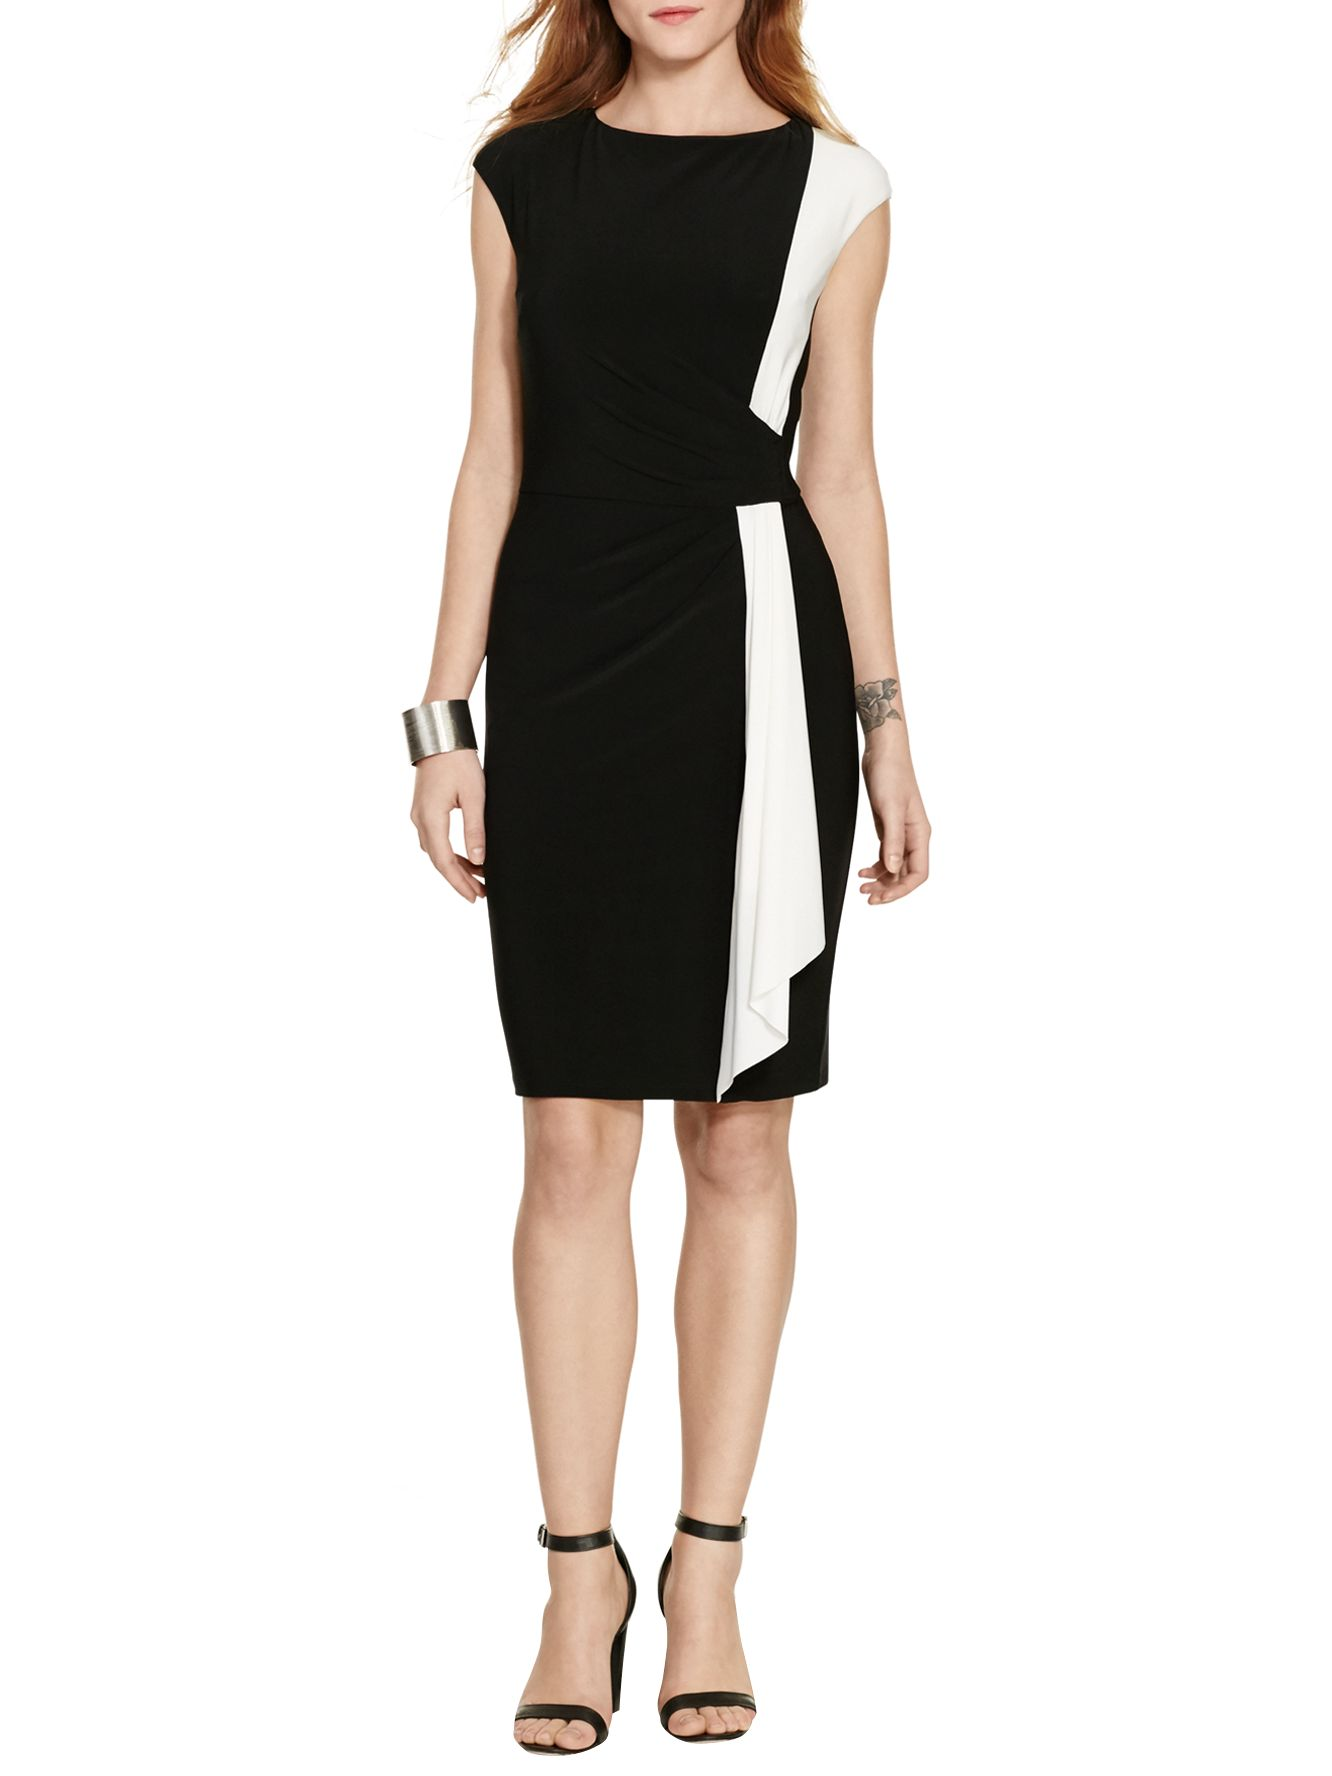 Lauren Ralph Lauren Lauren Ralph Lauren Two-Tone Jersey Dress, Black/Lauren White